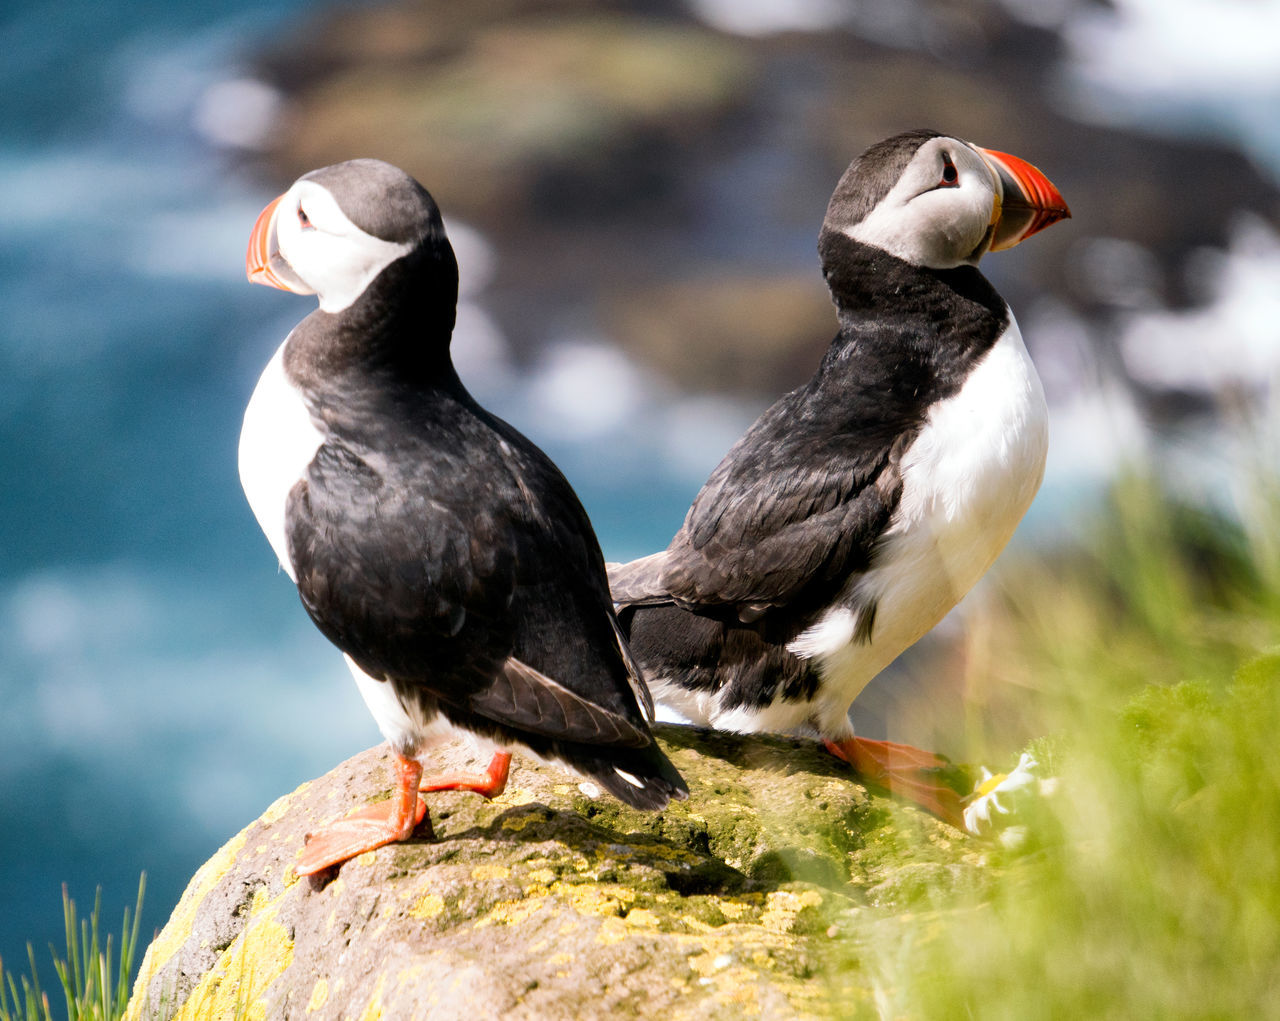 Puffins on the cliffs at Latrabjarg, Iceland Animal Themes Animal Wildlife Animals In The Wild Beak Bird Black Color Cliff Close-up Day Ice Latrabjarg Nature No People Ocean Outdoors Perching Puffins Westfjords